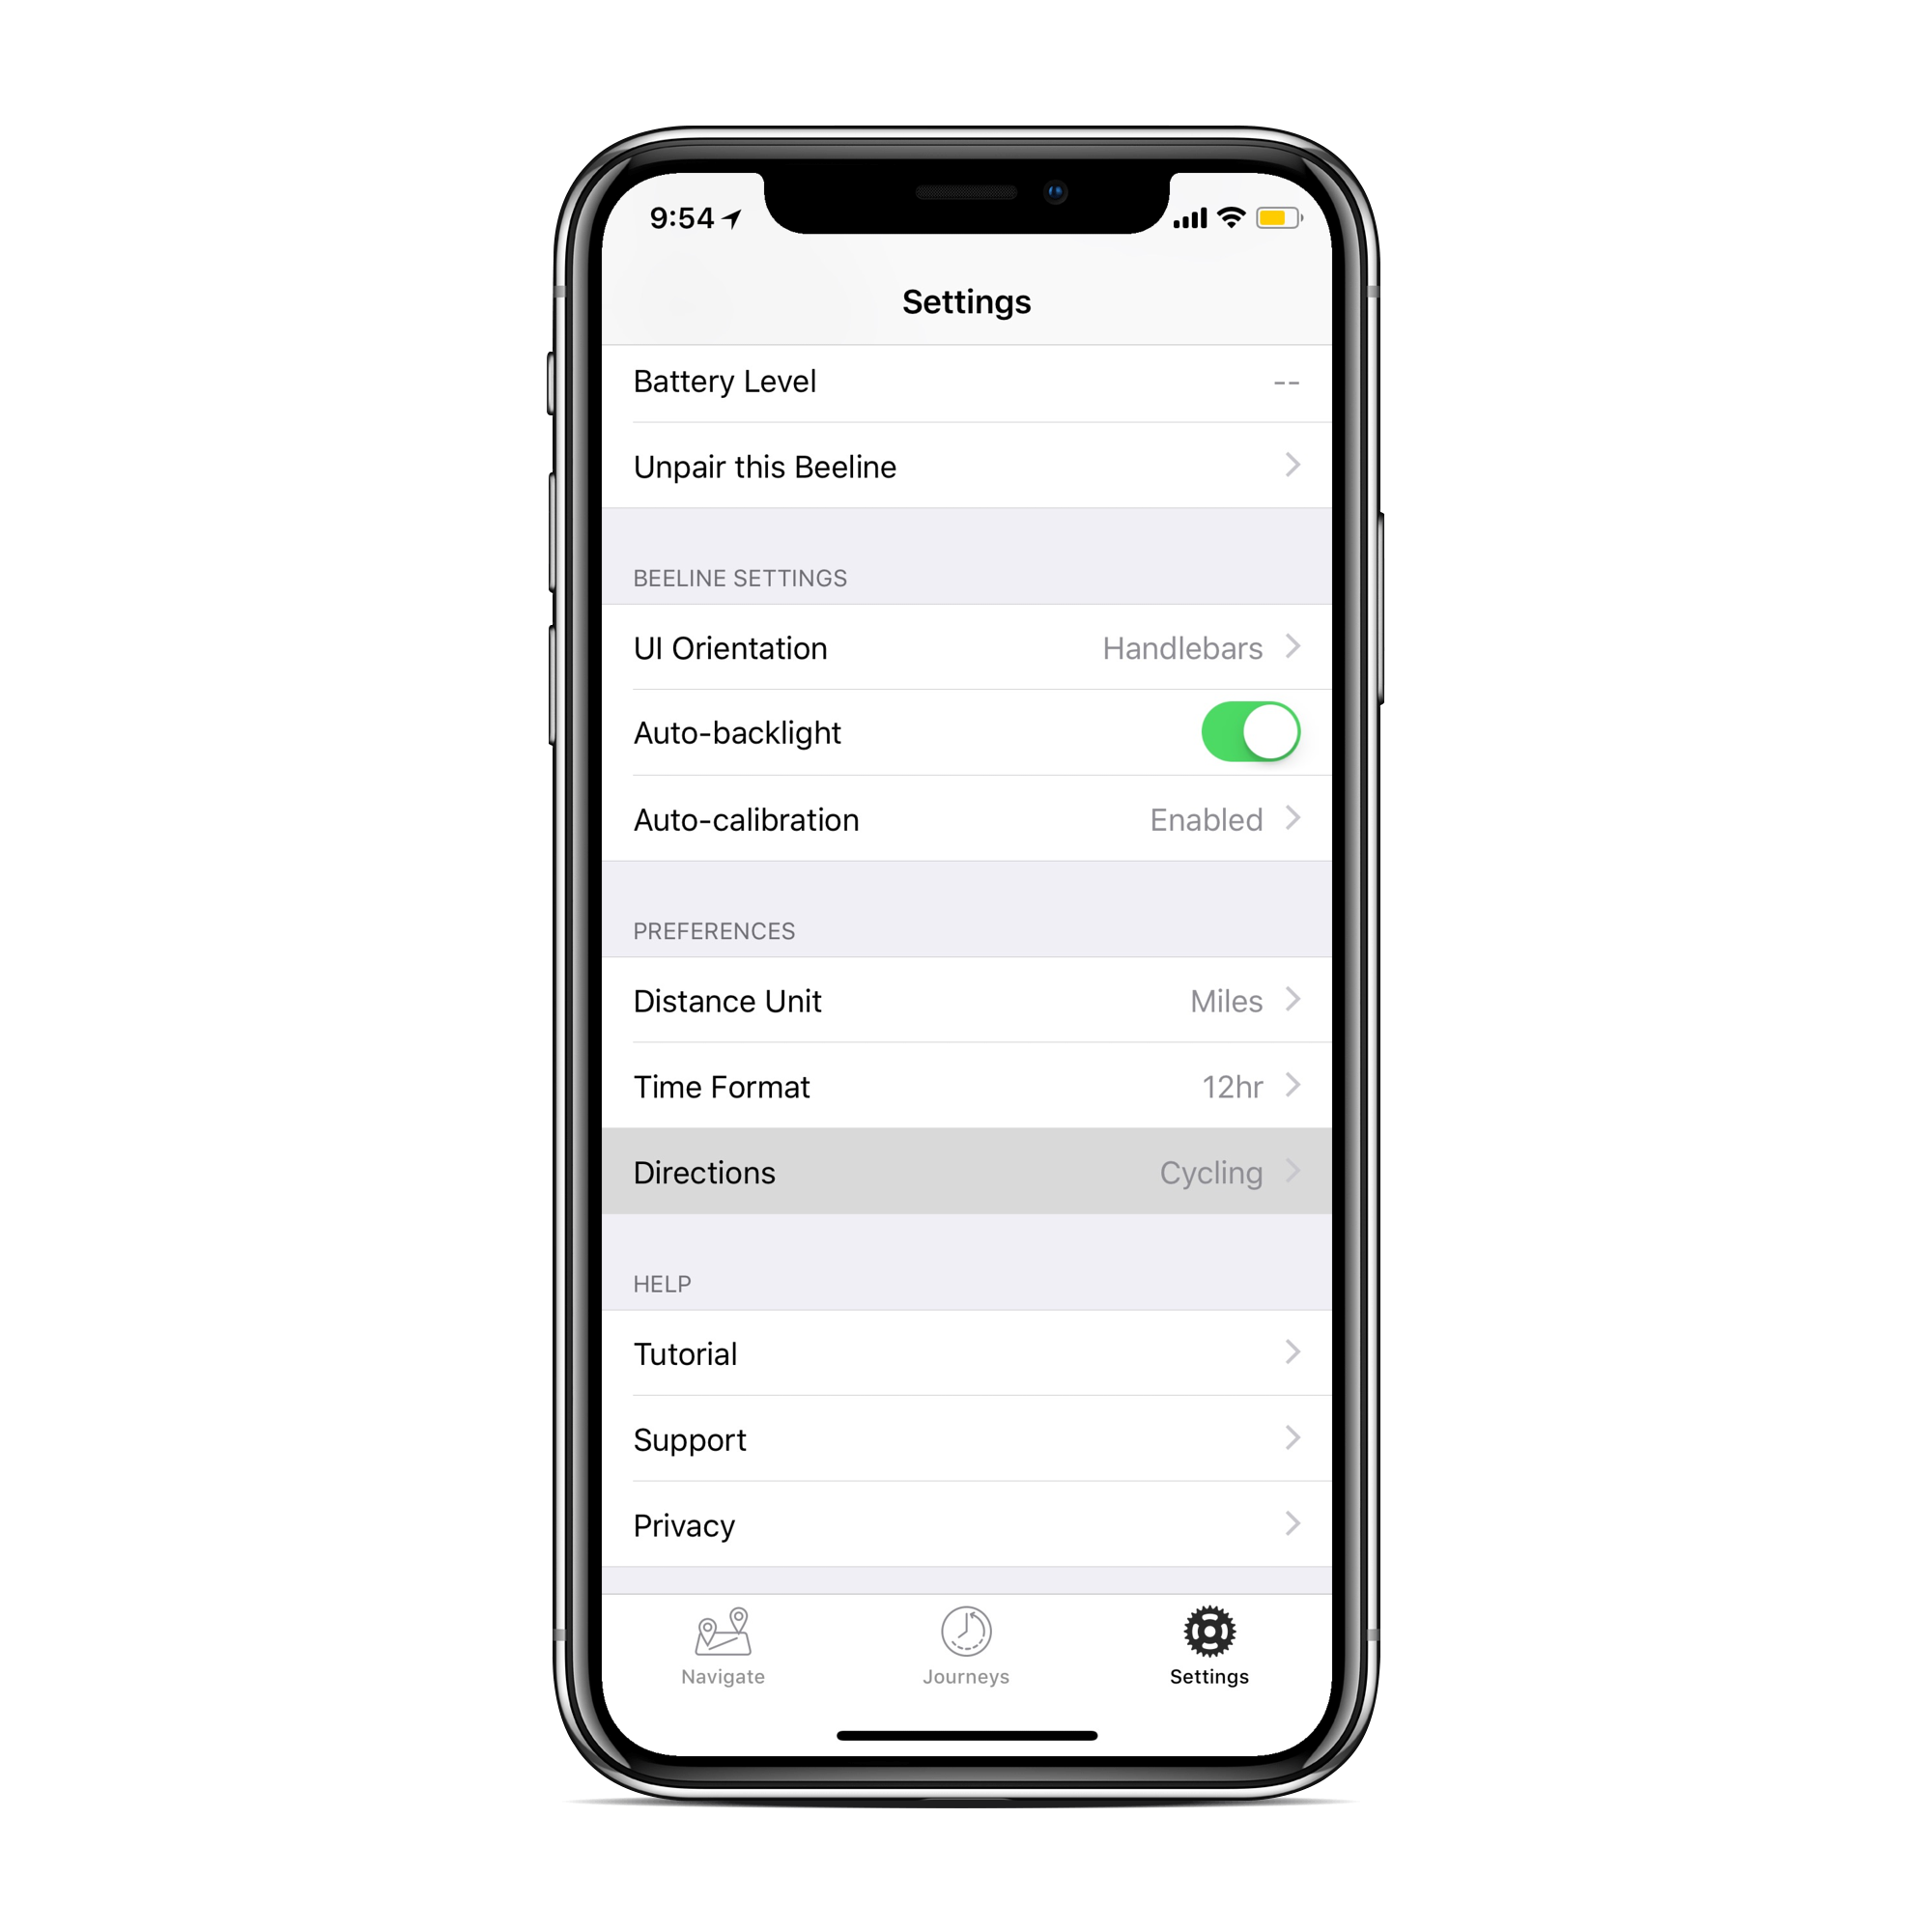 Screen showing the Beeline app in settings with directions preferences highlighted